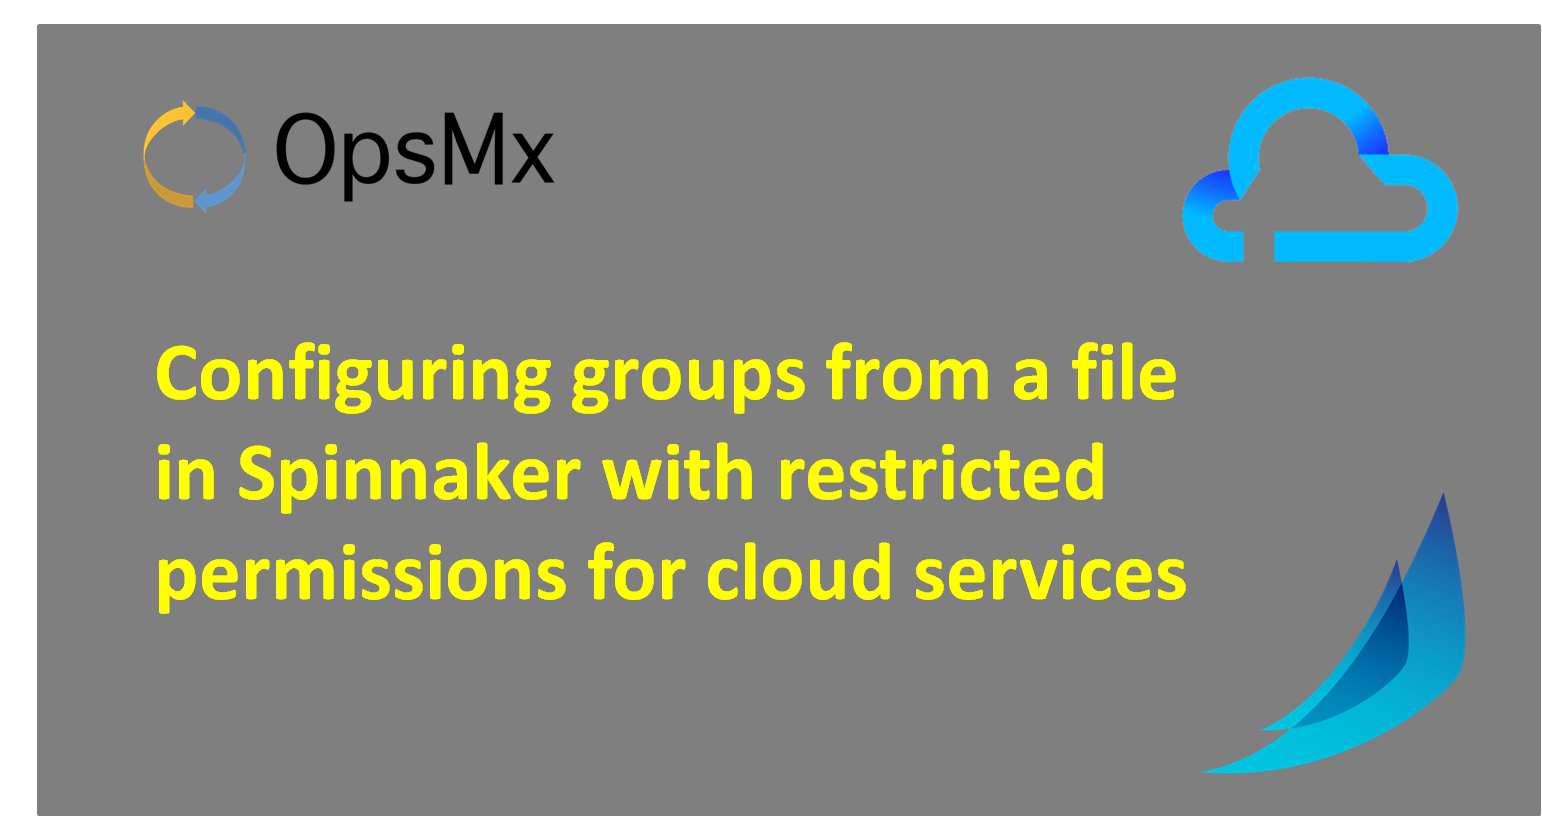 Configuring groups from a file in Spinnaker with restricted permissions for cloud services